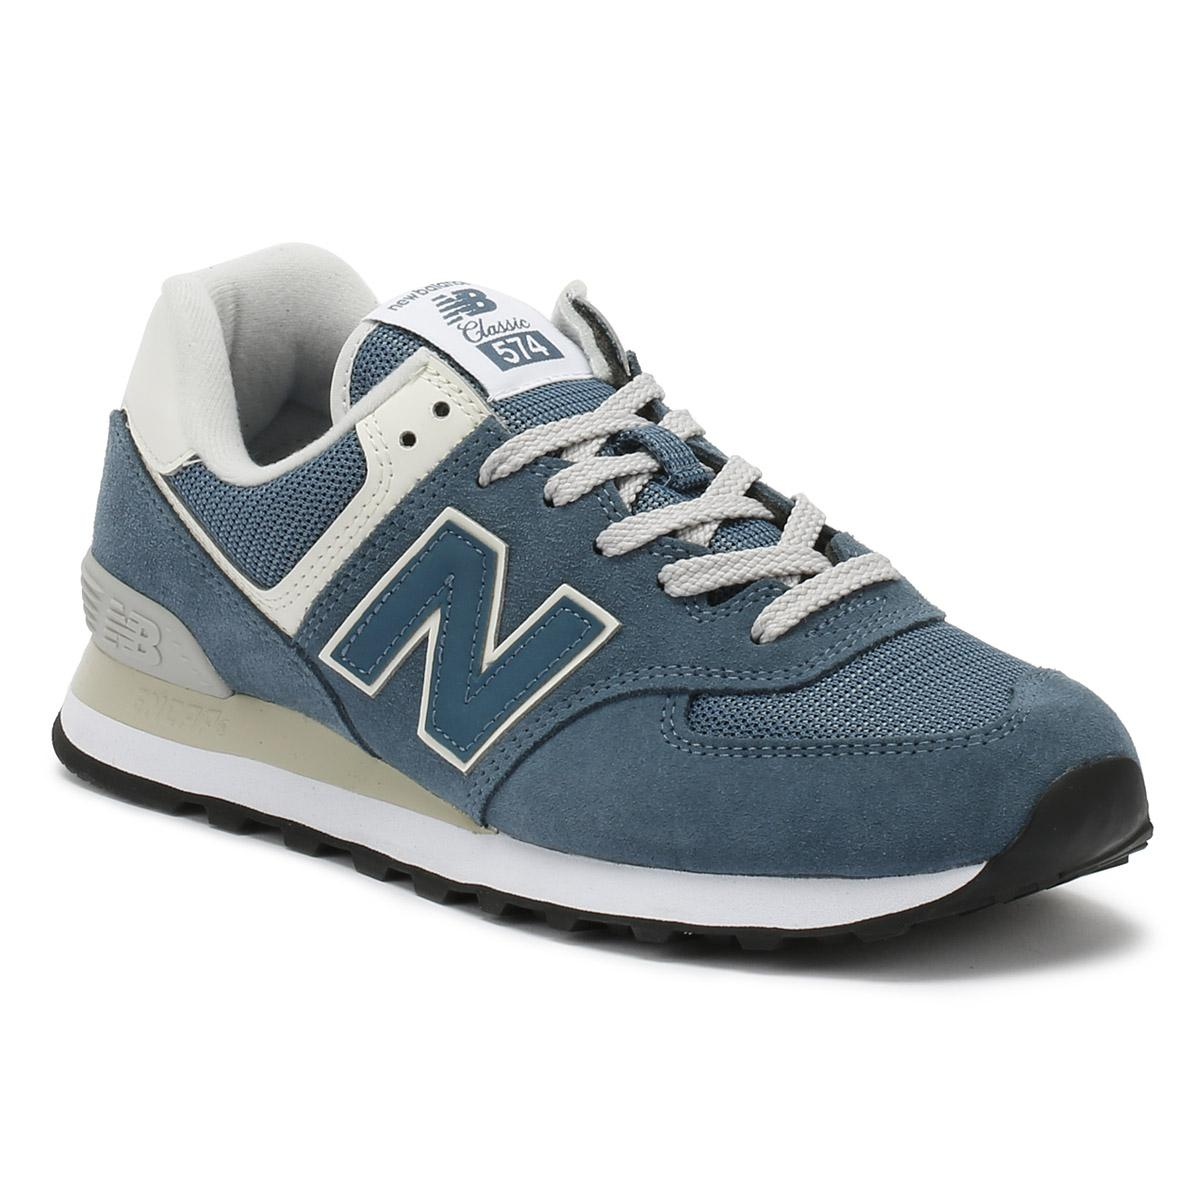 New Balance Womens Light Petrol Blue 574 Classic Trainers in Blue - Lyst dcd63aa28